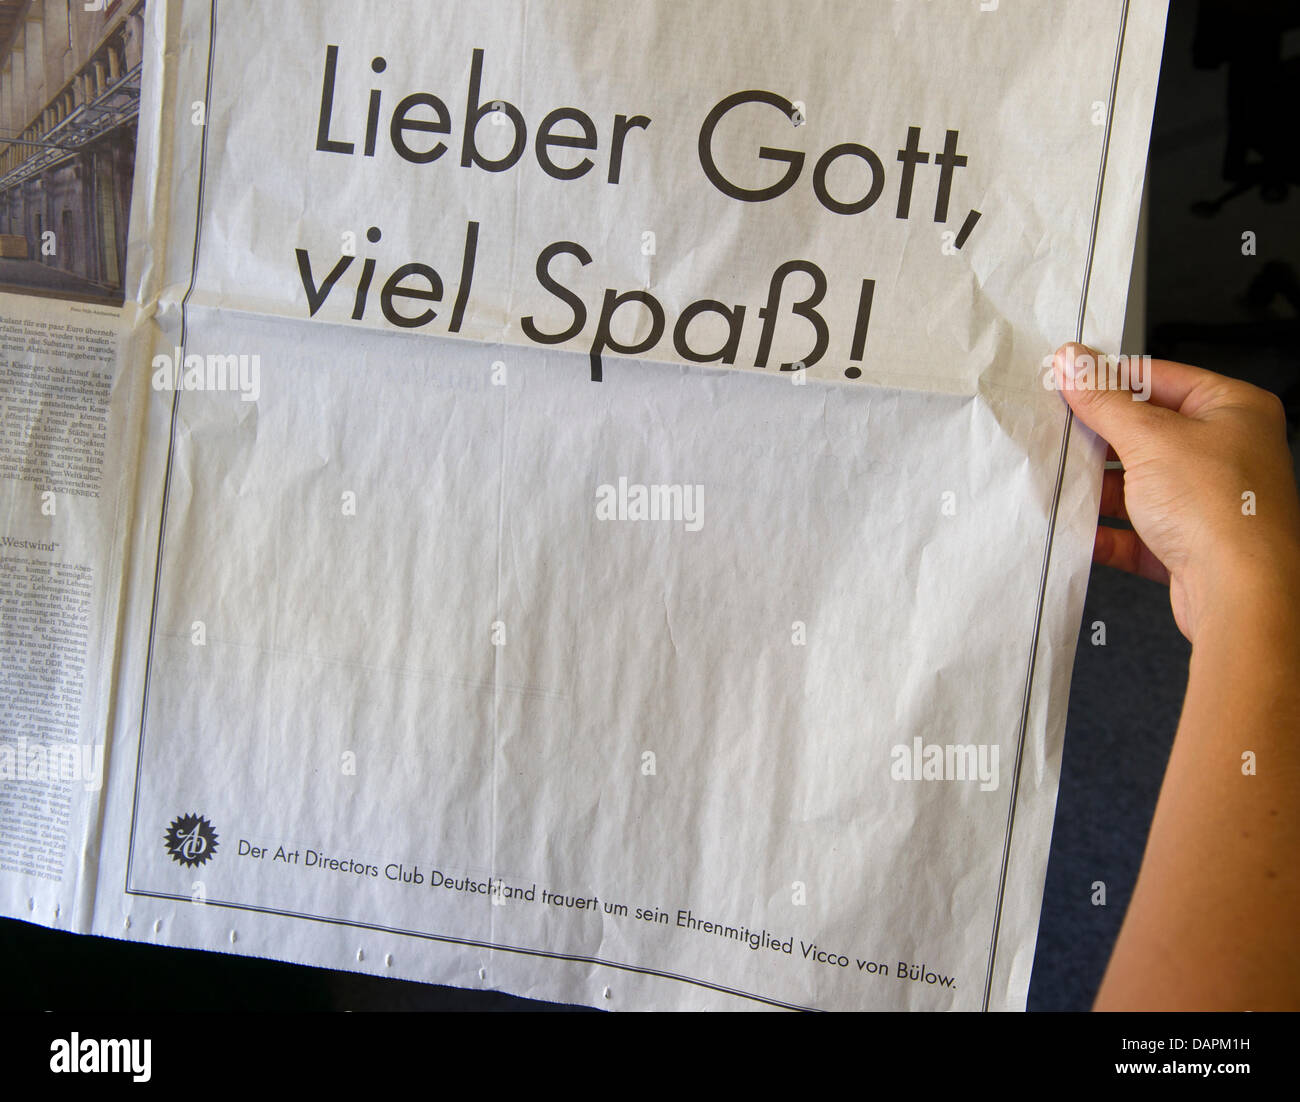 ILLUSTRATION - A full-page obituary of a supraregional newspaper for died comedian Viktor von Buelow alias Loriot, stating 'Dear God, have fun!', is hold by a woman in Munich, Germany, 26 August 2011. The death notice was commissioned by the Art Directors Club Germany, whose honory member Loriot had been. Loriot died at the age of 87 on 22 August 2011. Photo: PETER KNEFFEL Stock Photo